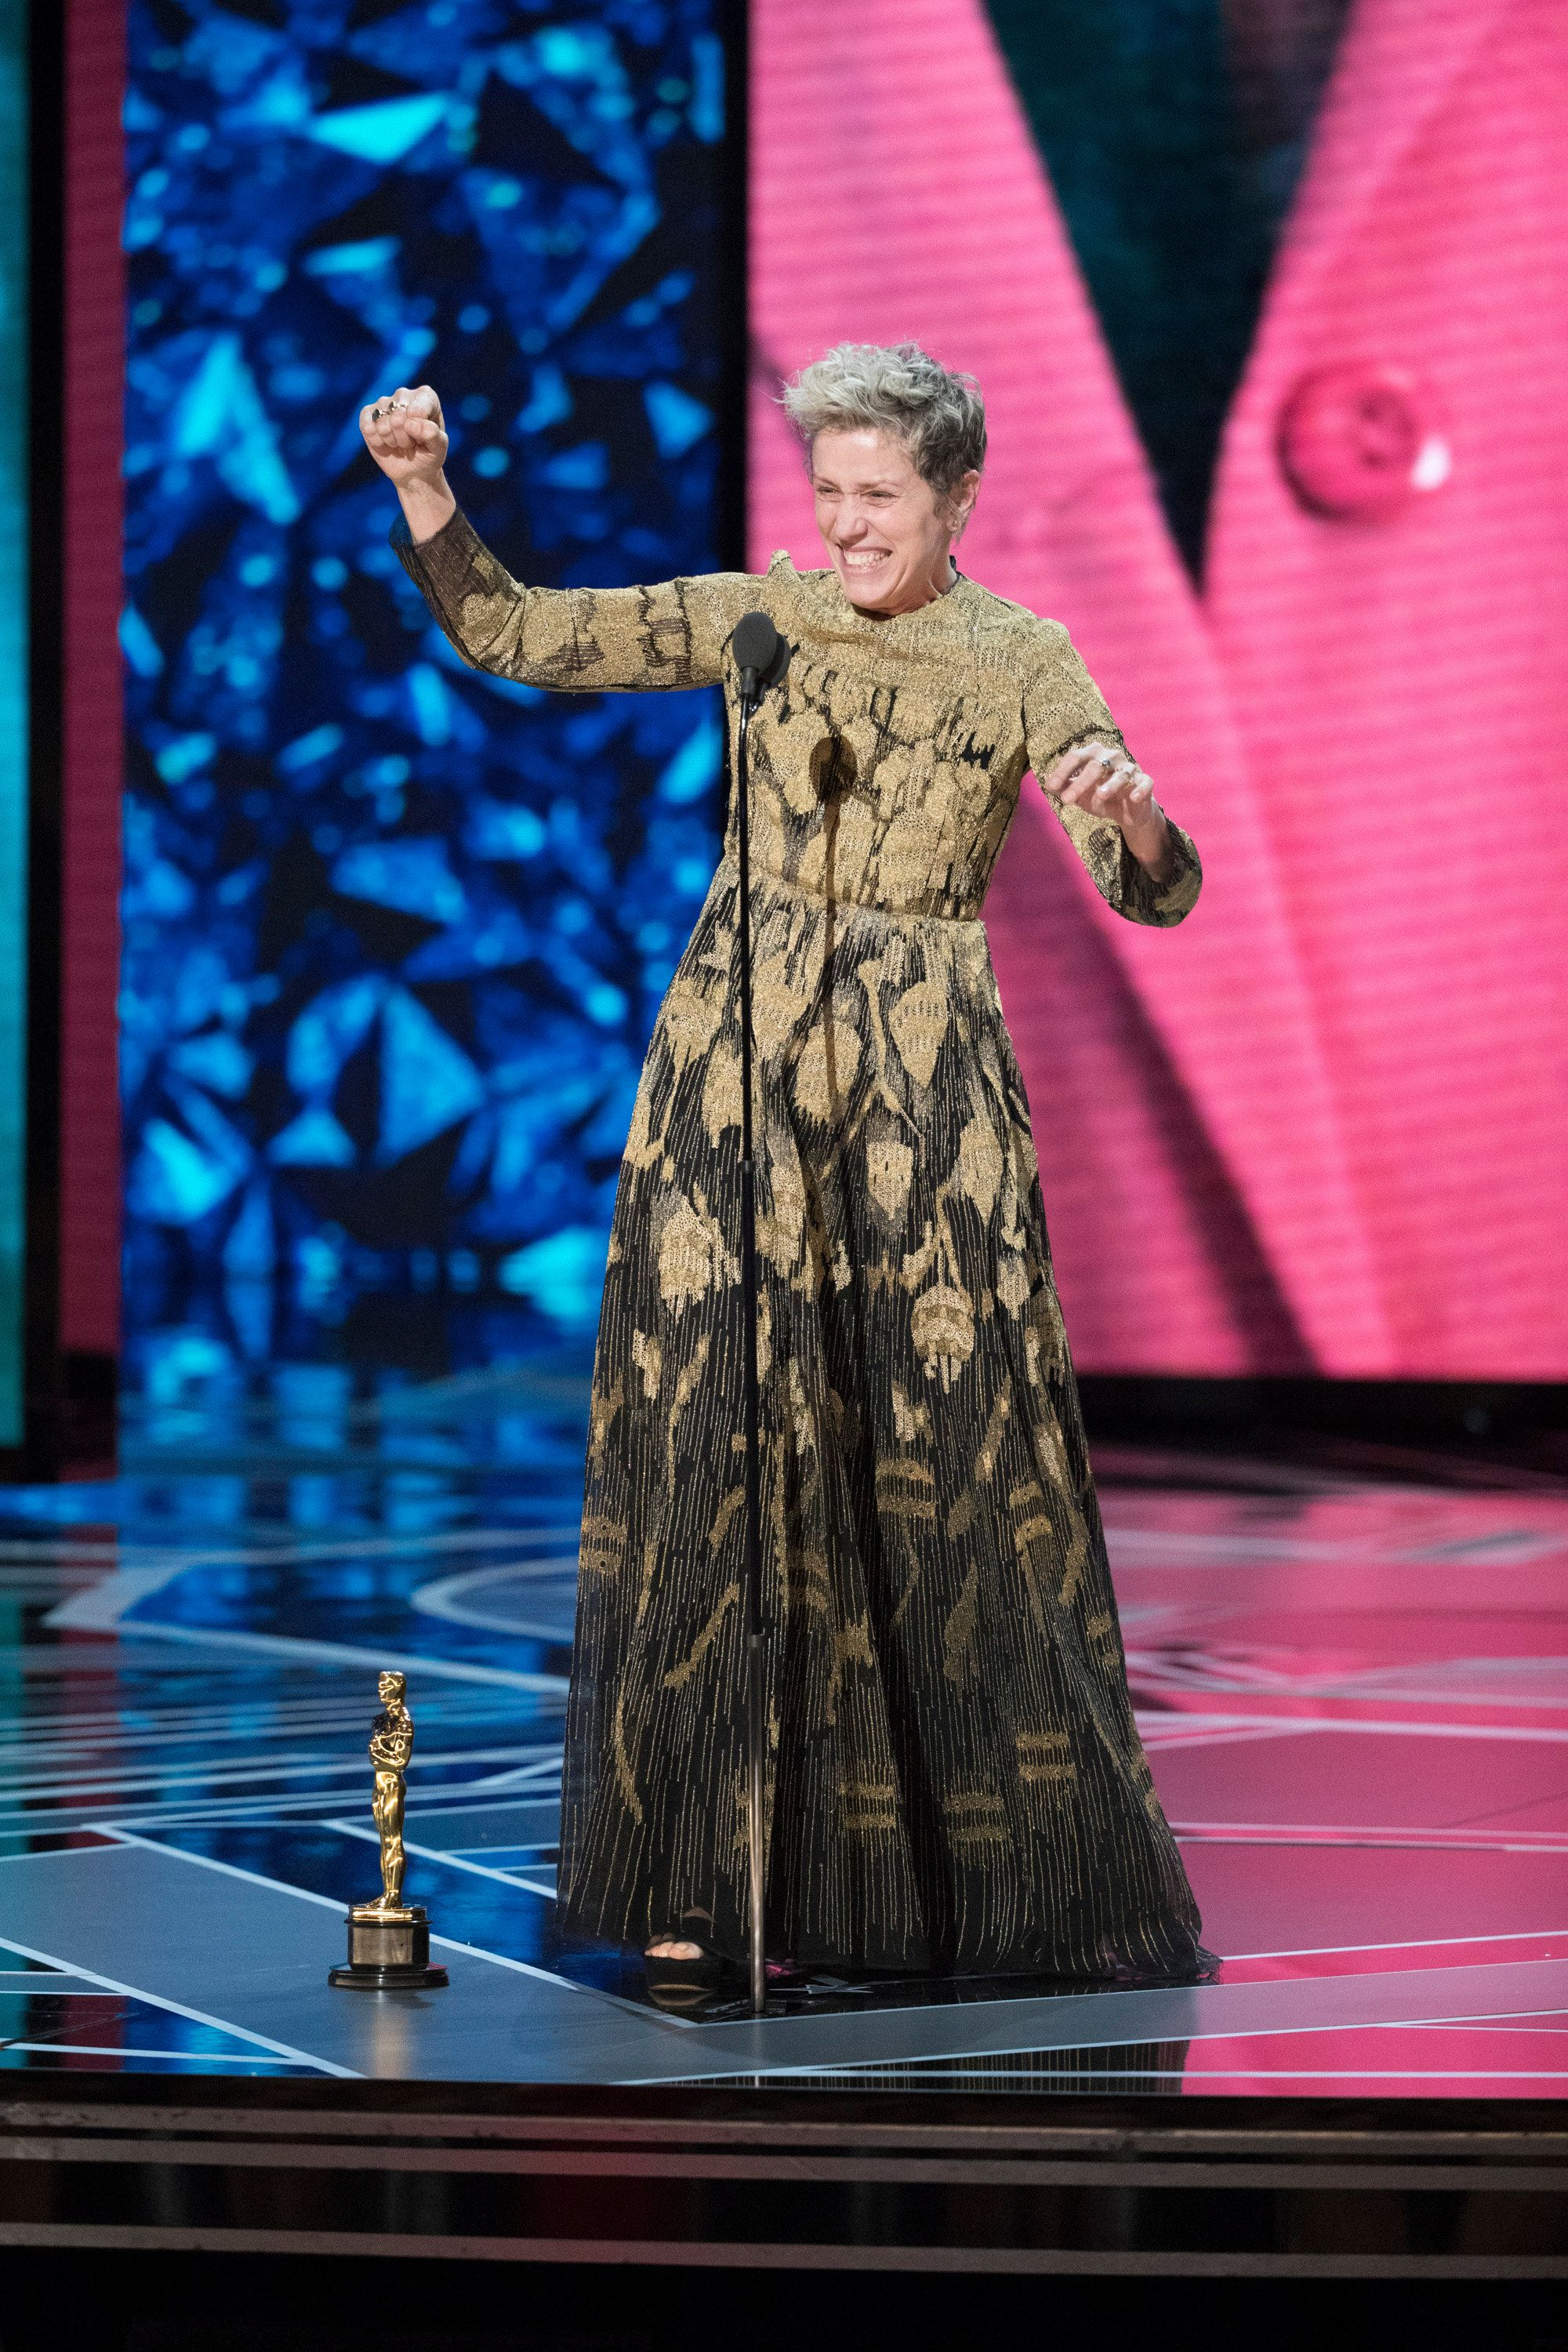 THE OSCARS(r) - The 90th Oscars(r)  broadcasts live on Oscar(r) SUNDAY, MARCH 4, 2018, at the Dolby Theatre® at Hollywood & Highland Center® in Hollywood, on the ABC Television Network. (Craig Sjodin via Getty Images) FRANCES MCDORMAND